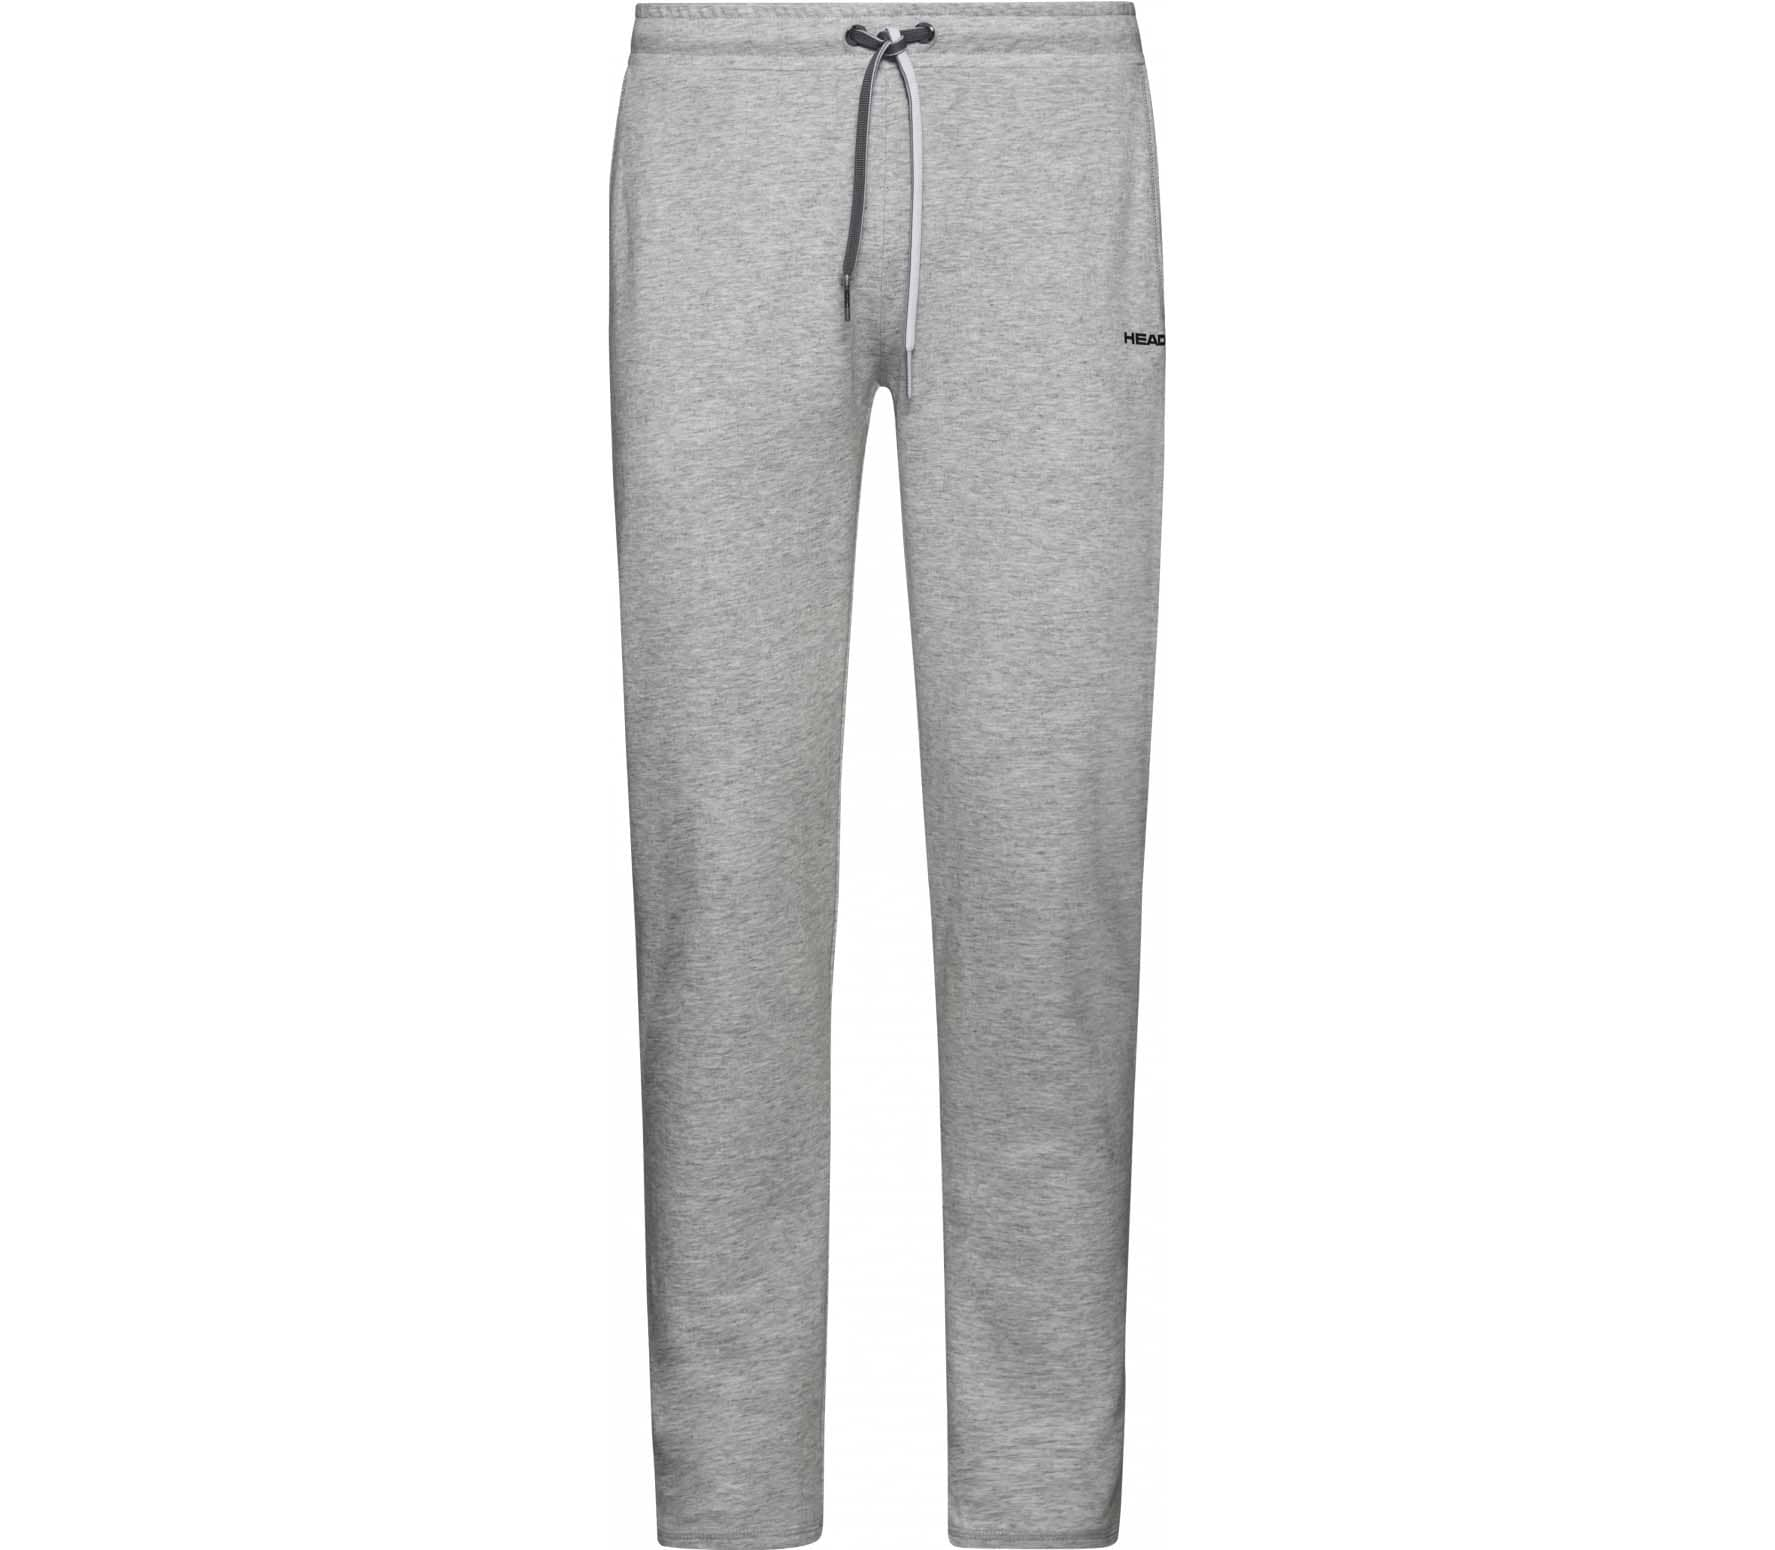 Club Byron Men Tennis Trousers